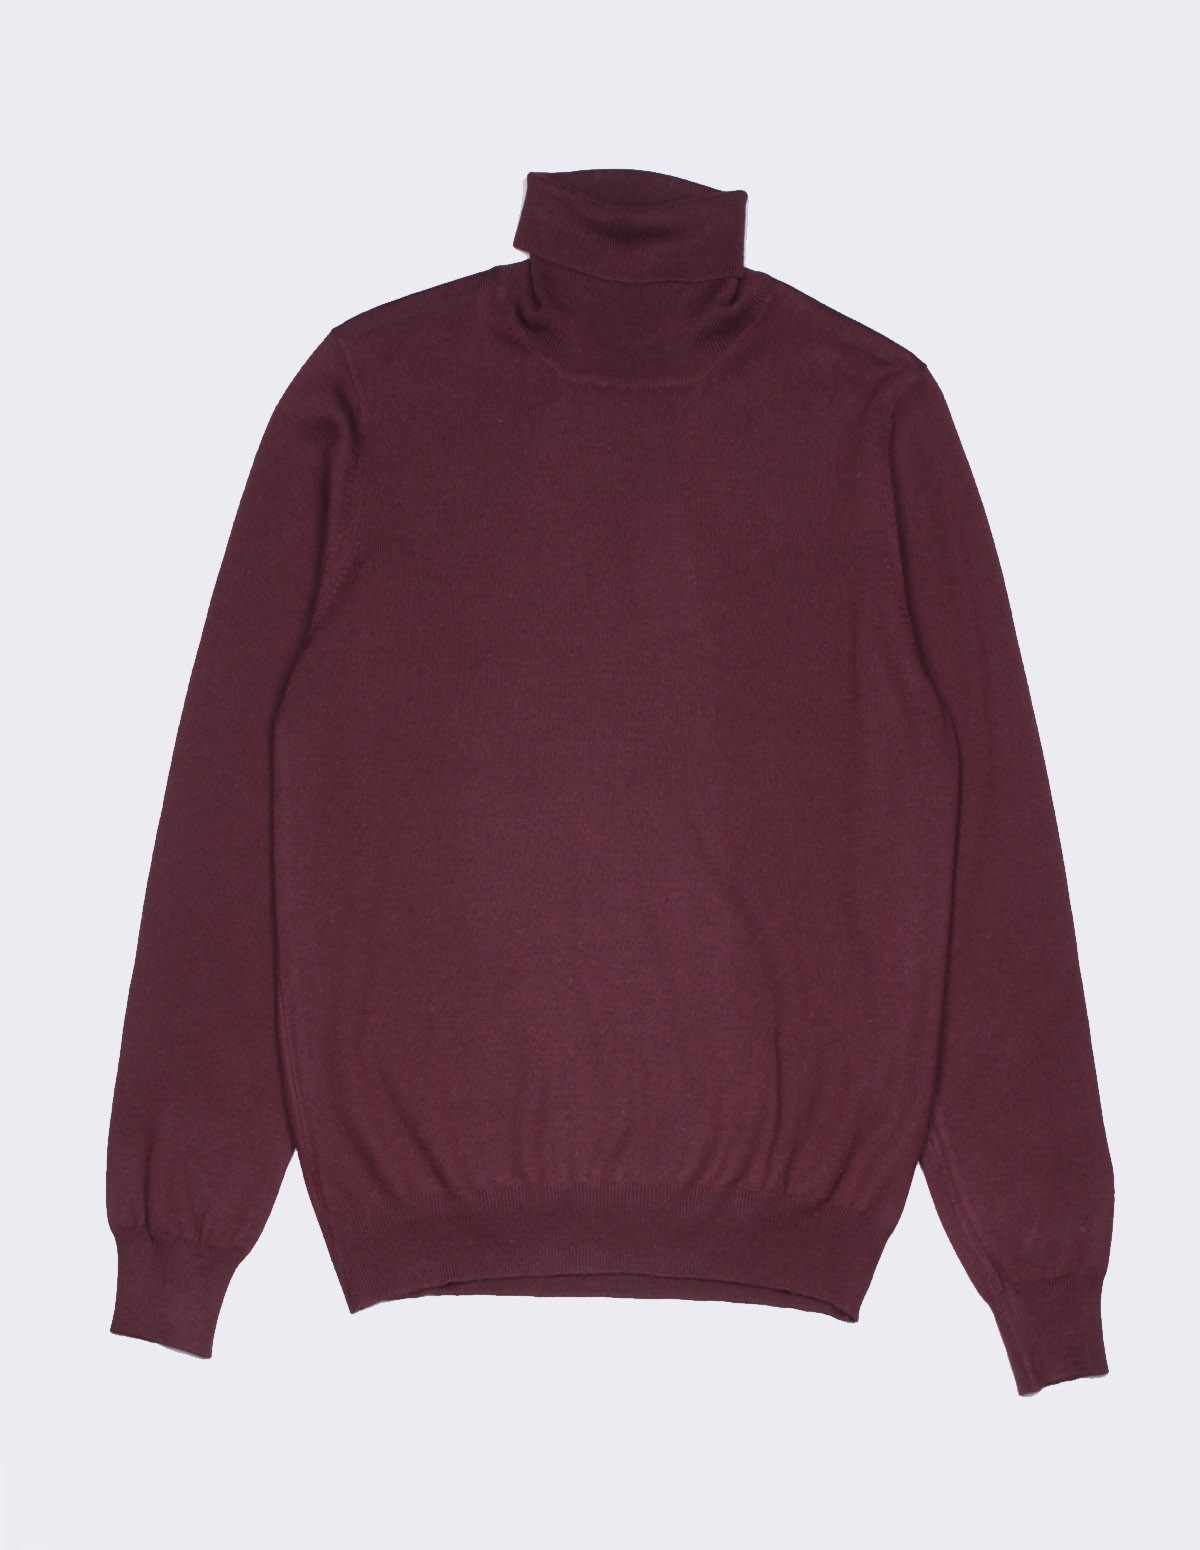 Ft Rollneck Sweater - BORDEAUX 291